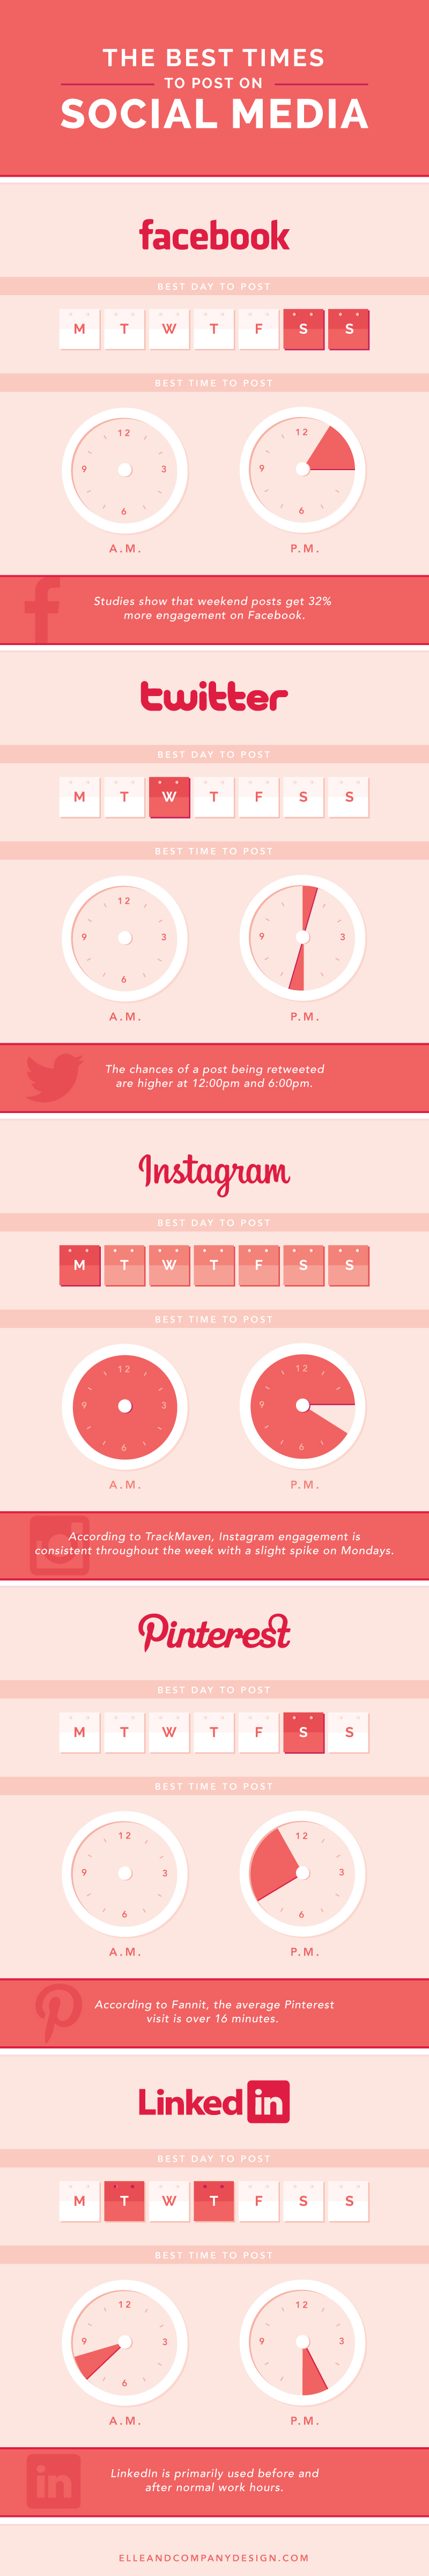 The Best Times to Post to Social Media - Elle & Company